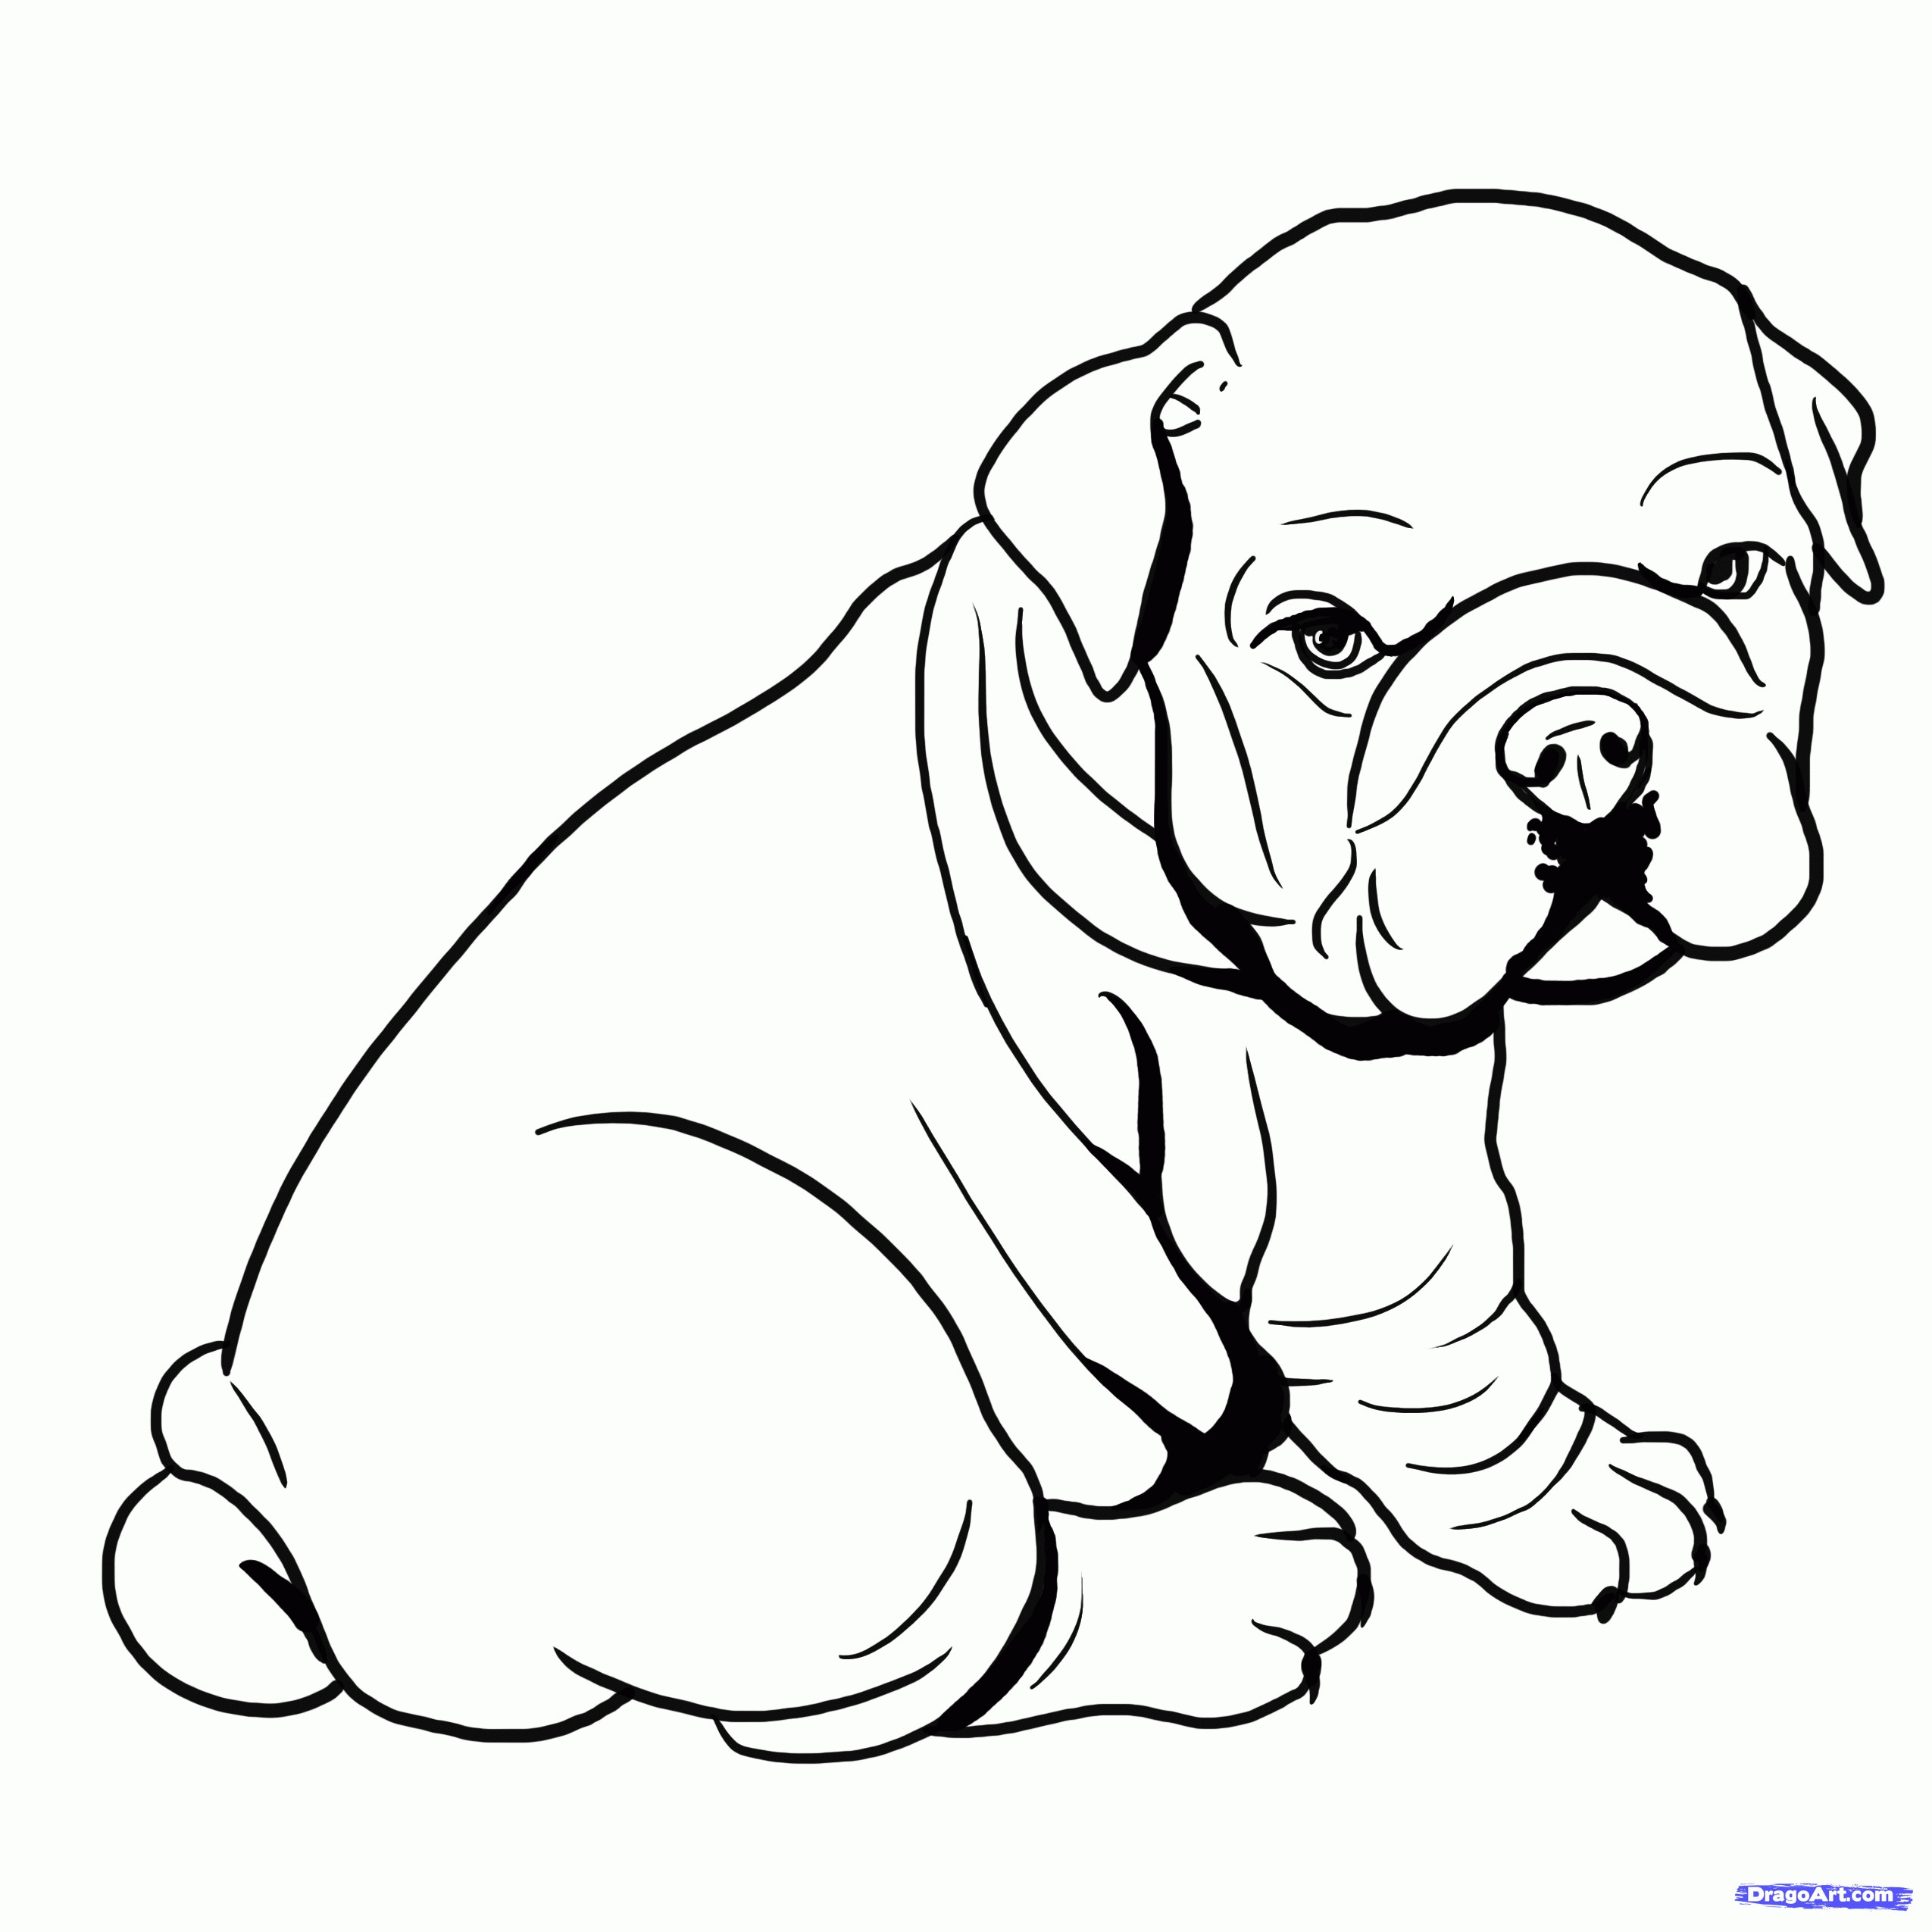 2550x2550 How To Draw A Pitbull Best Drawing Pitbulls At Getdrawings